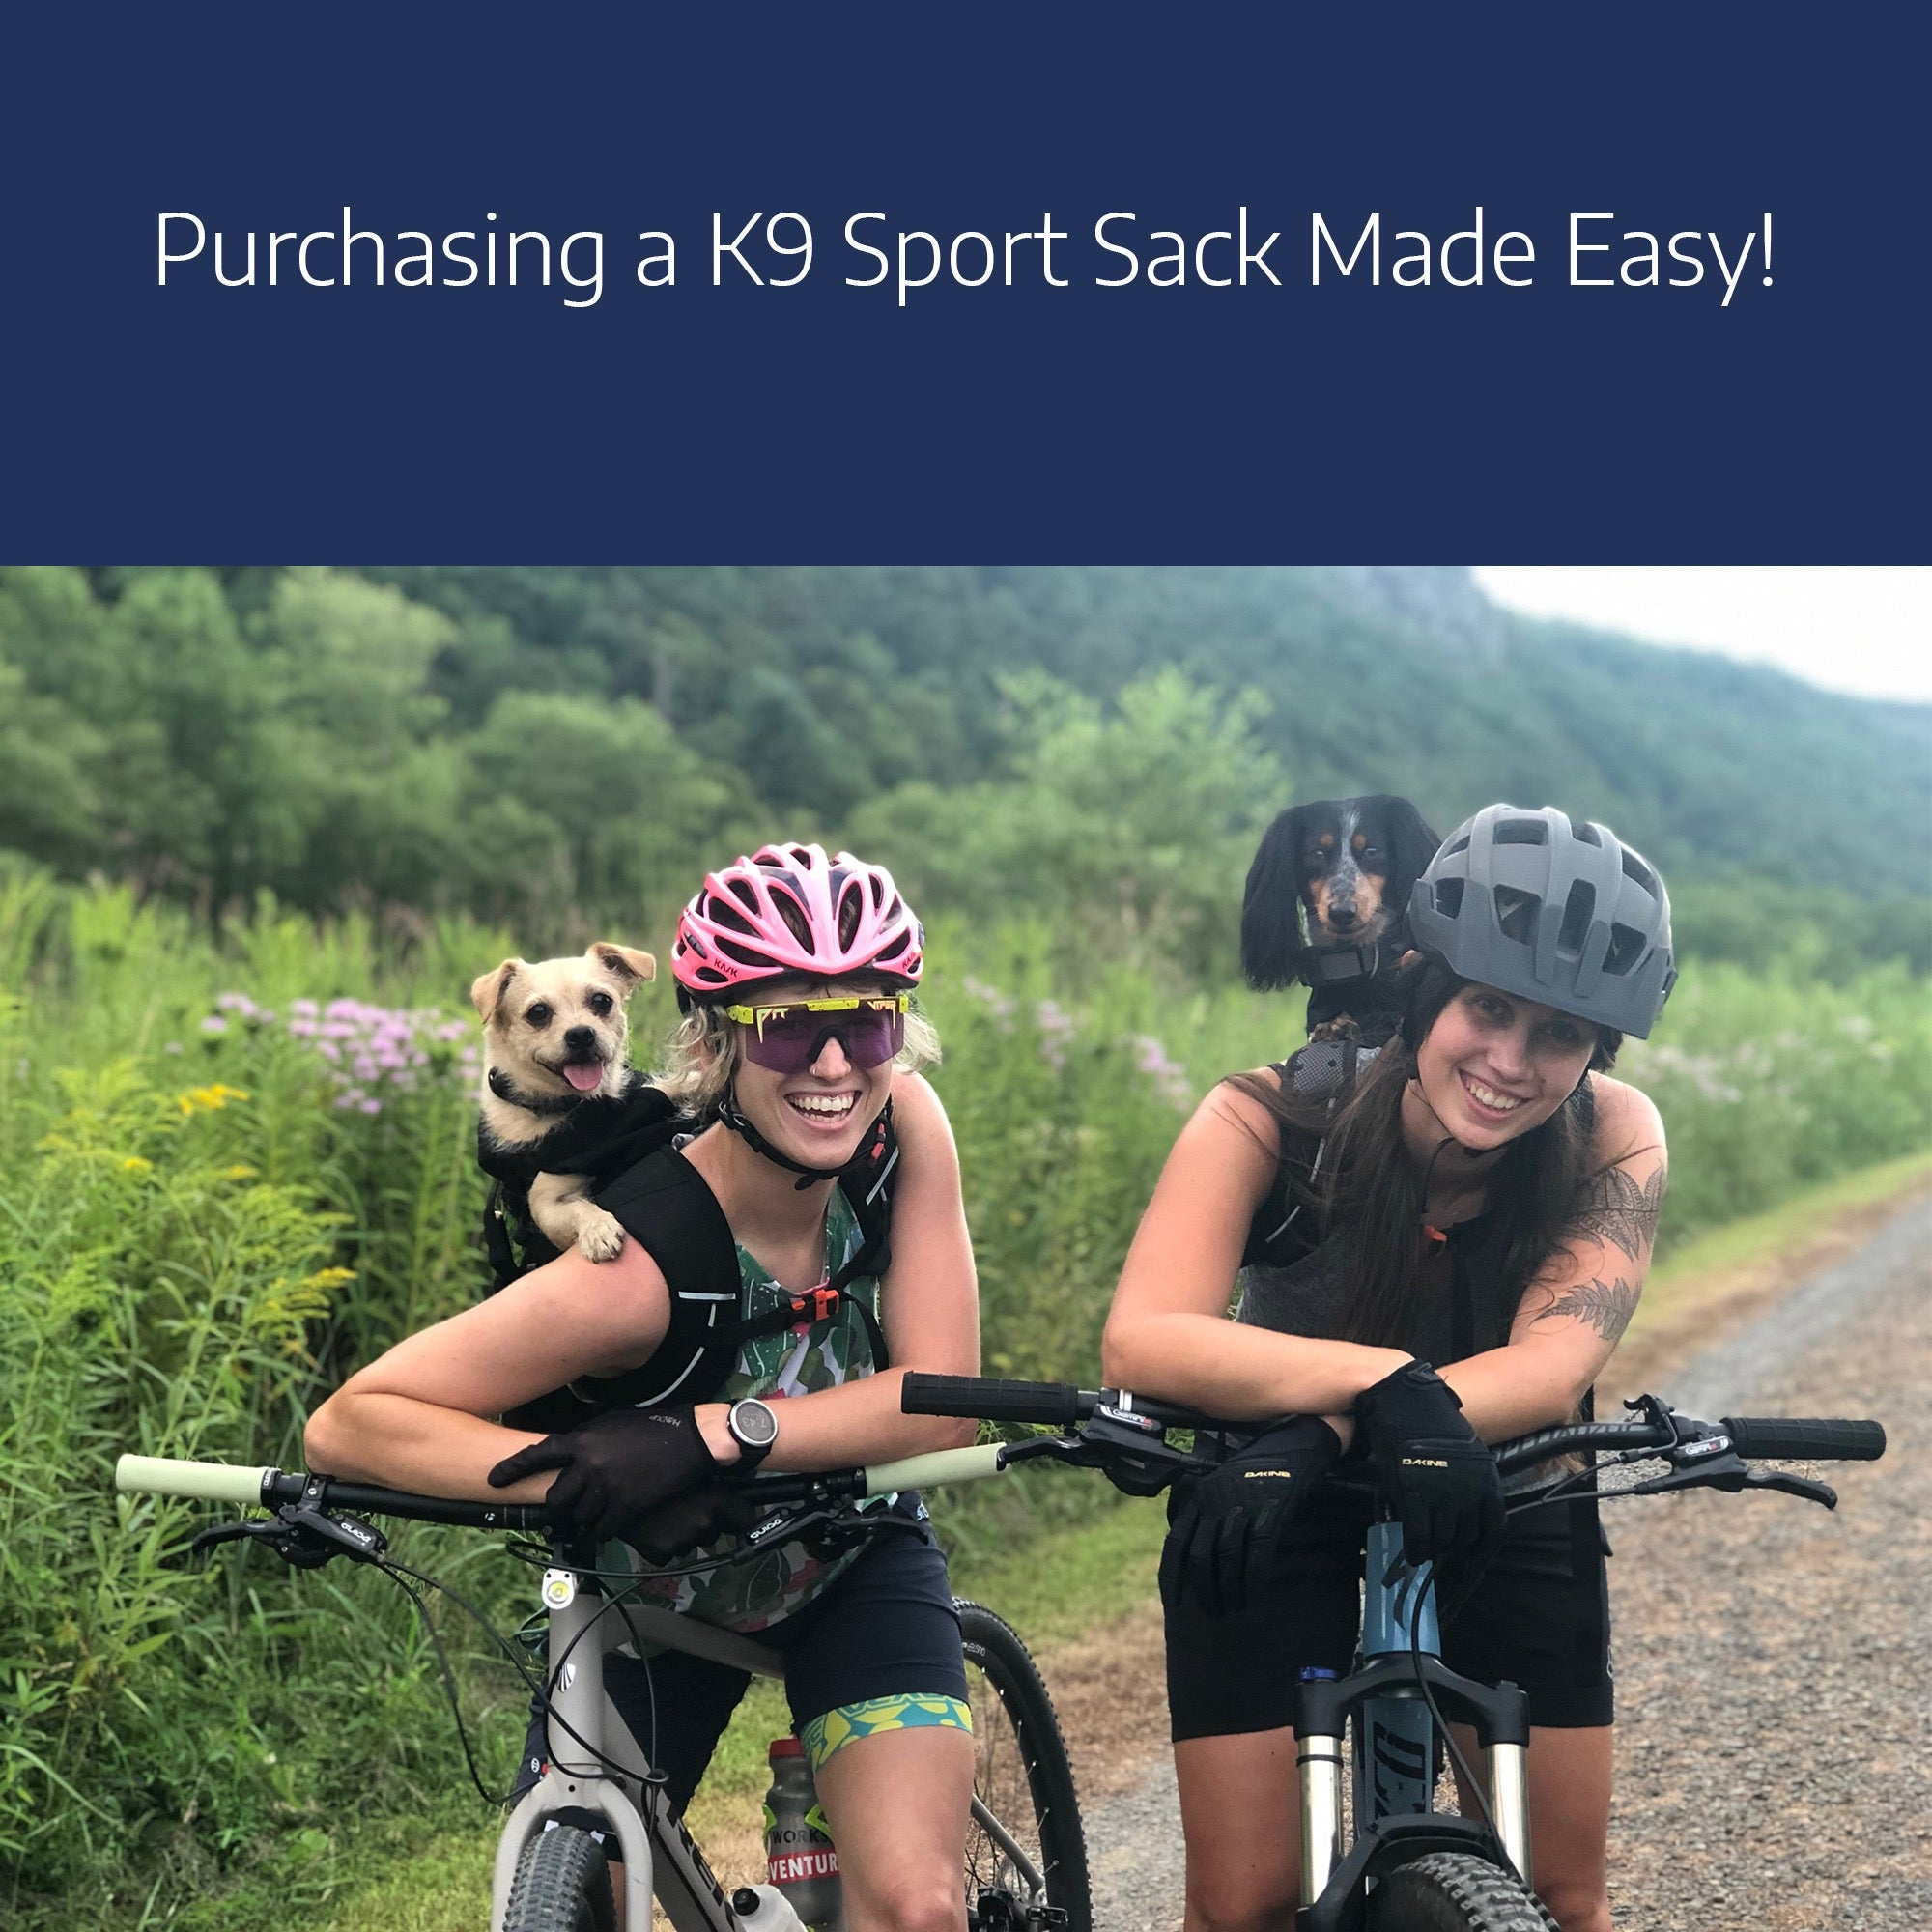 Purchasing a K9 Sport Sack Made Easy!